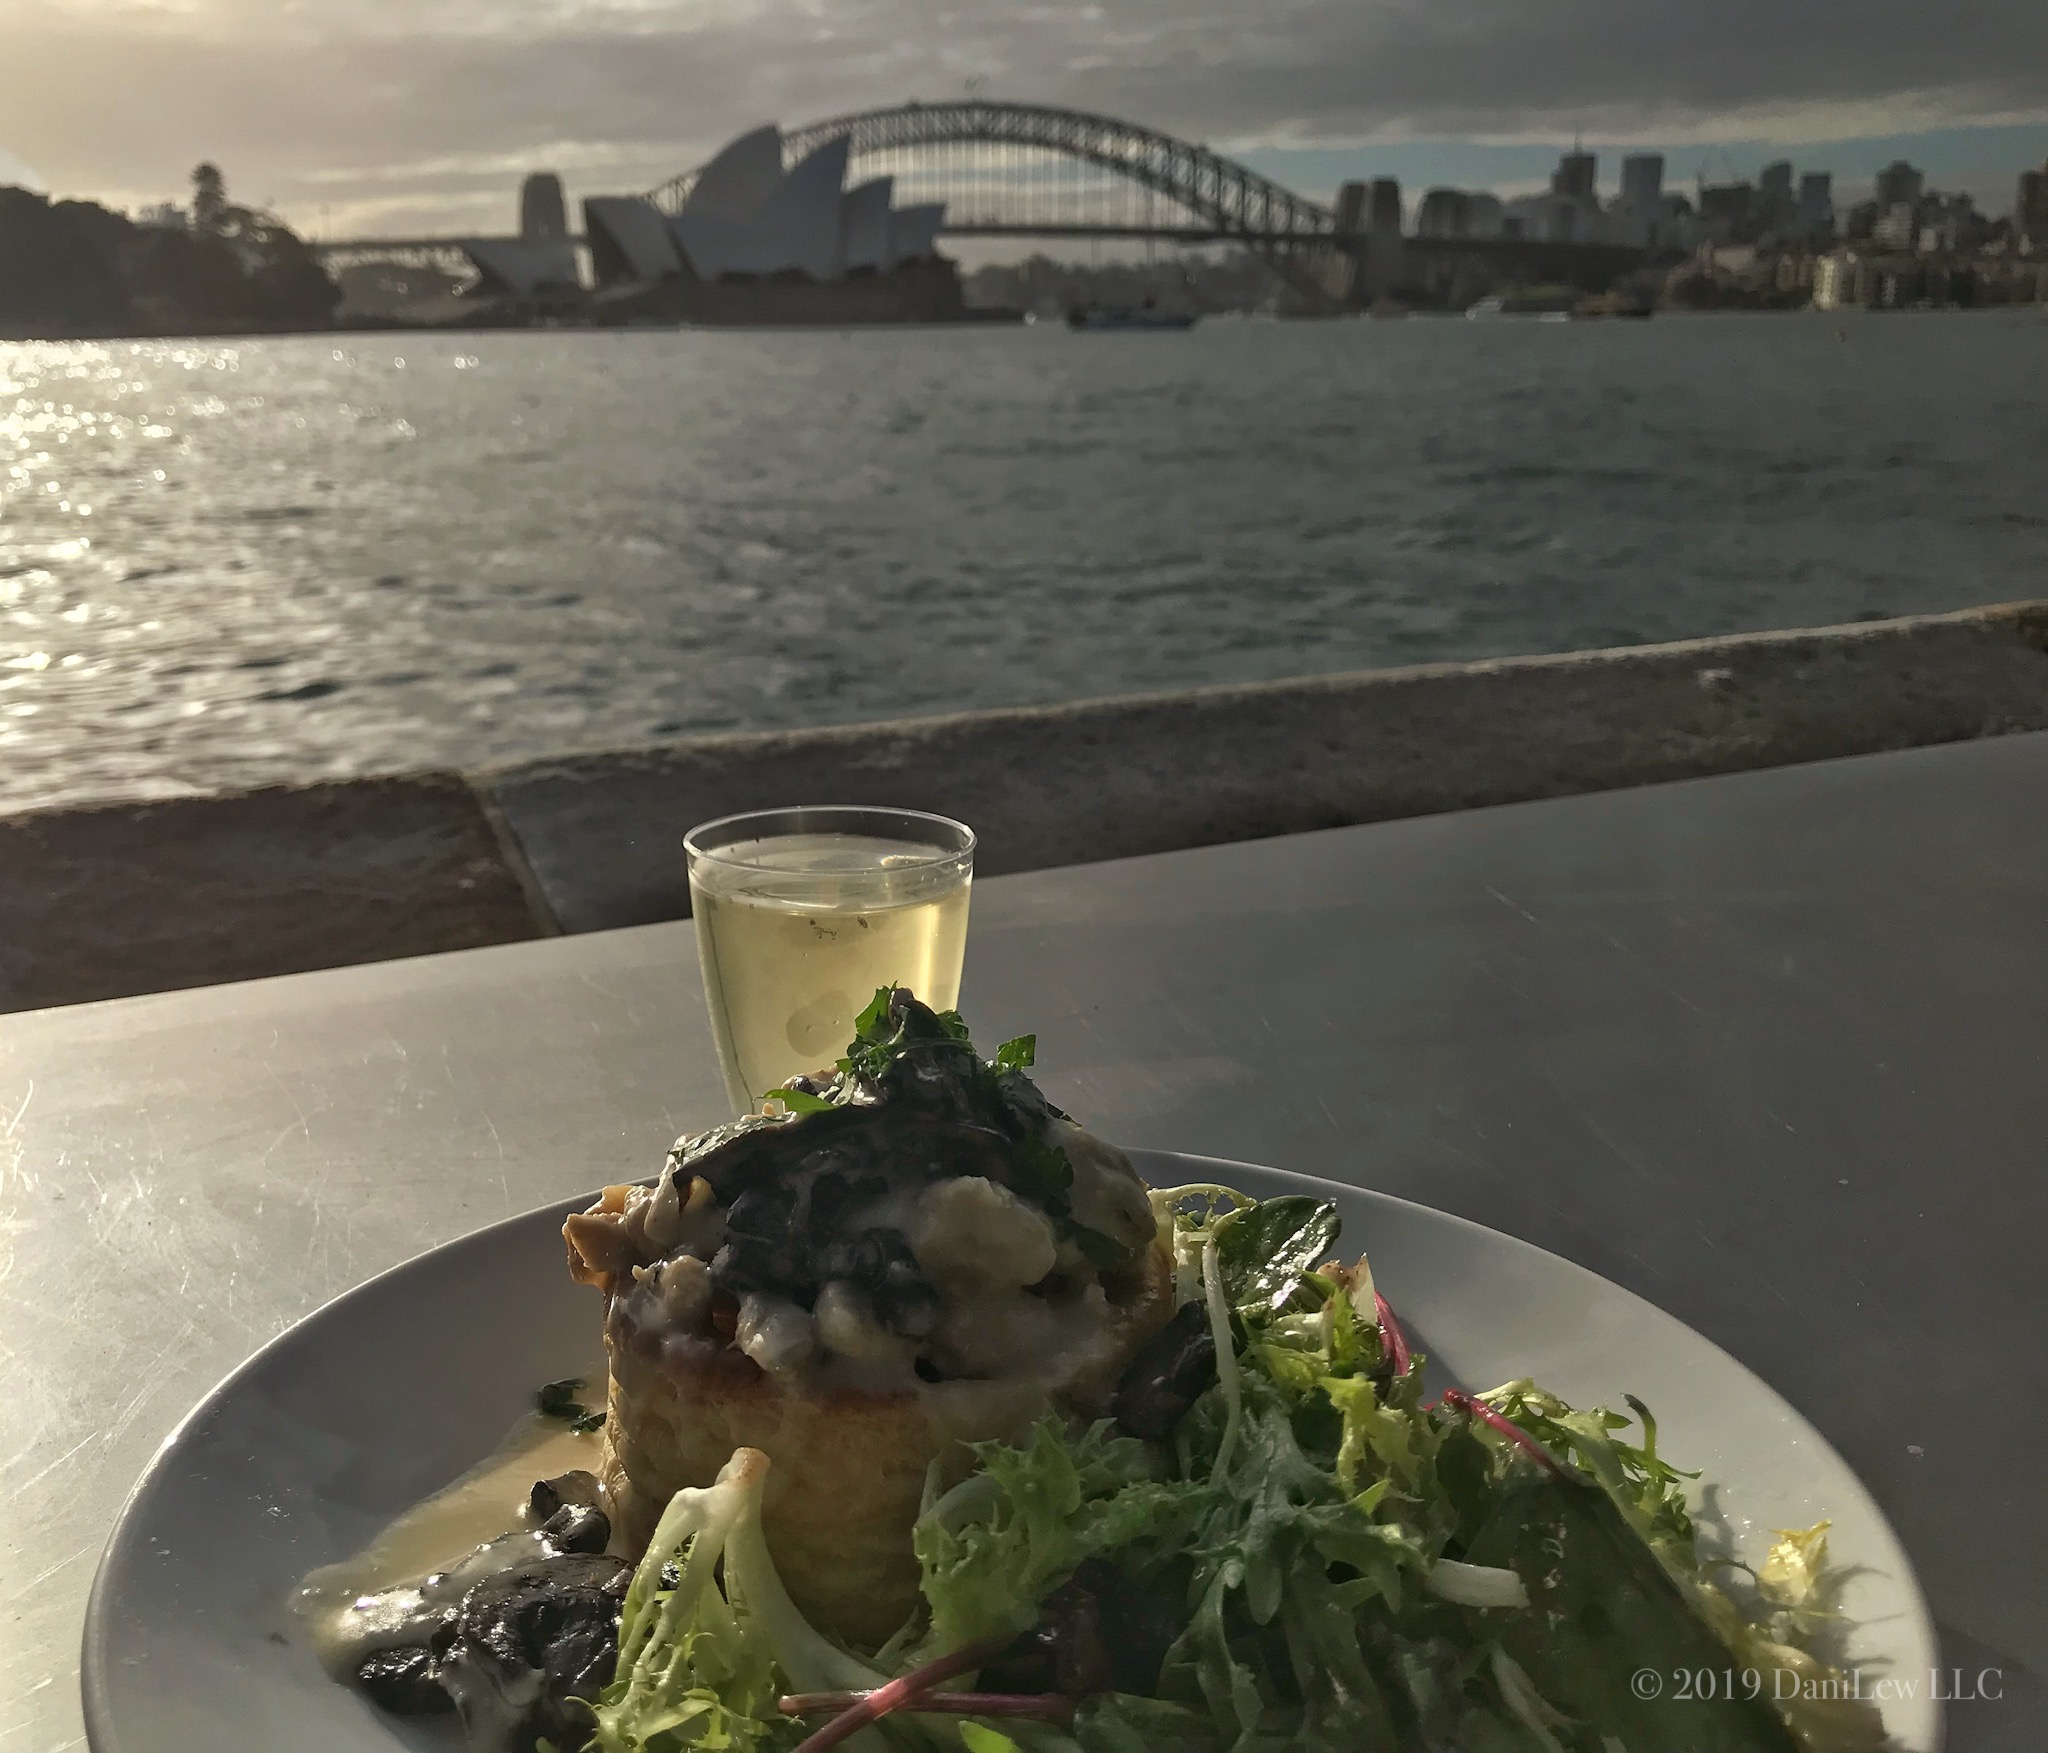 Sydney Harbor view from outdoor Handa Opera - image taken with an iPhone 7